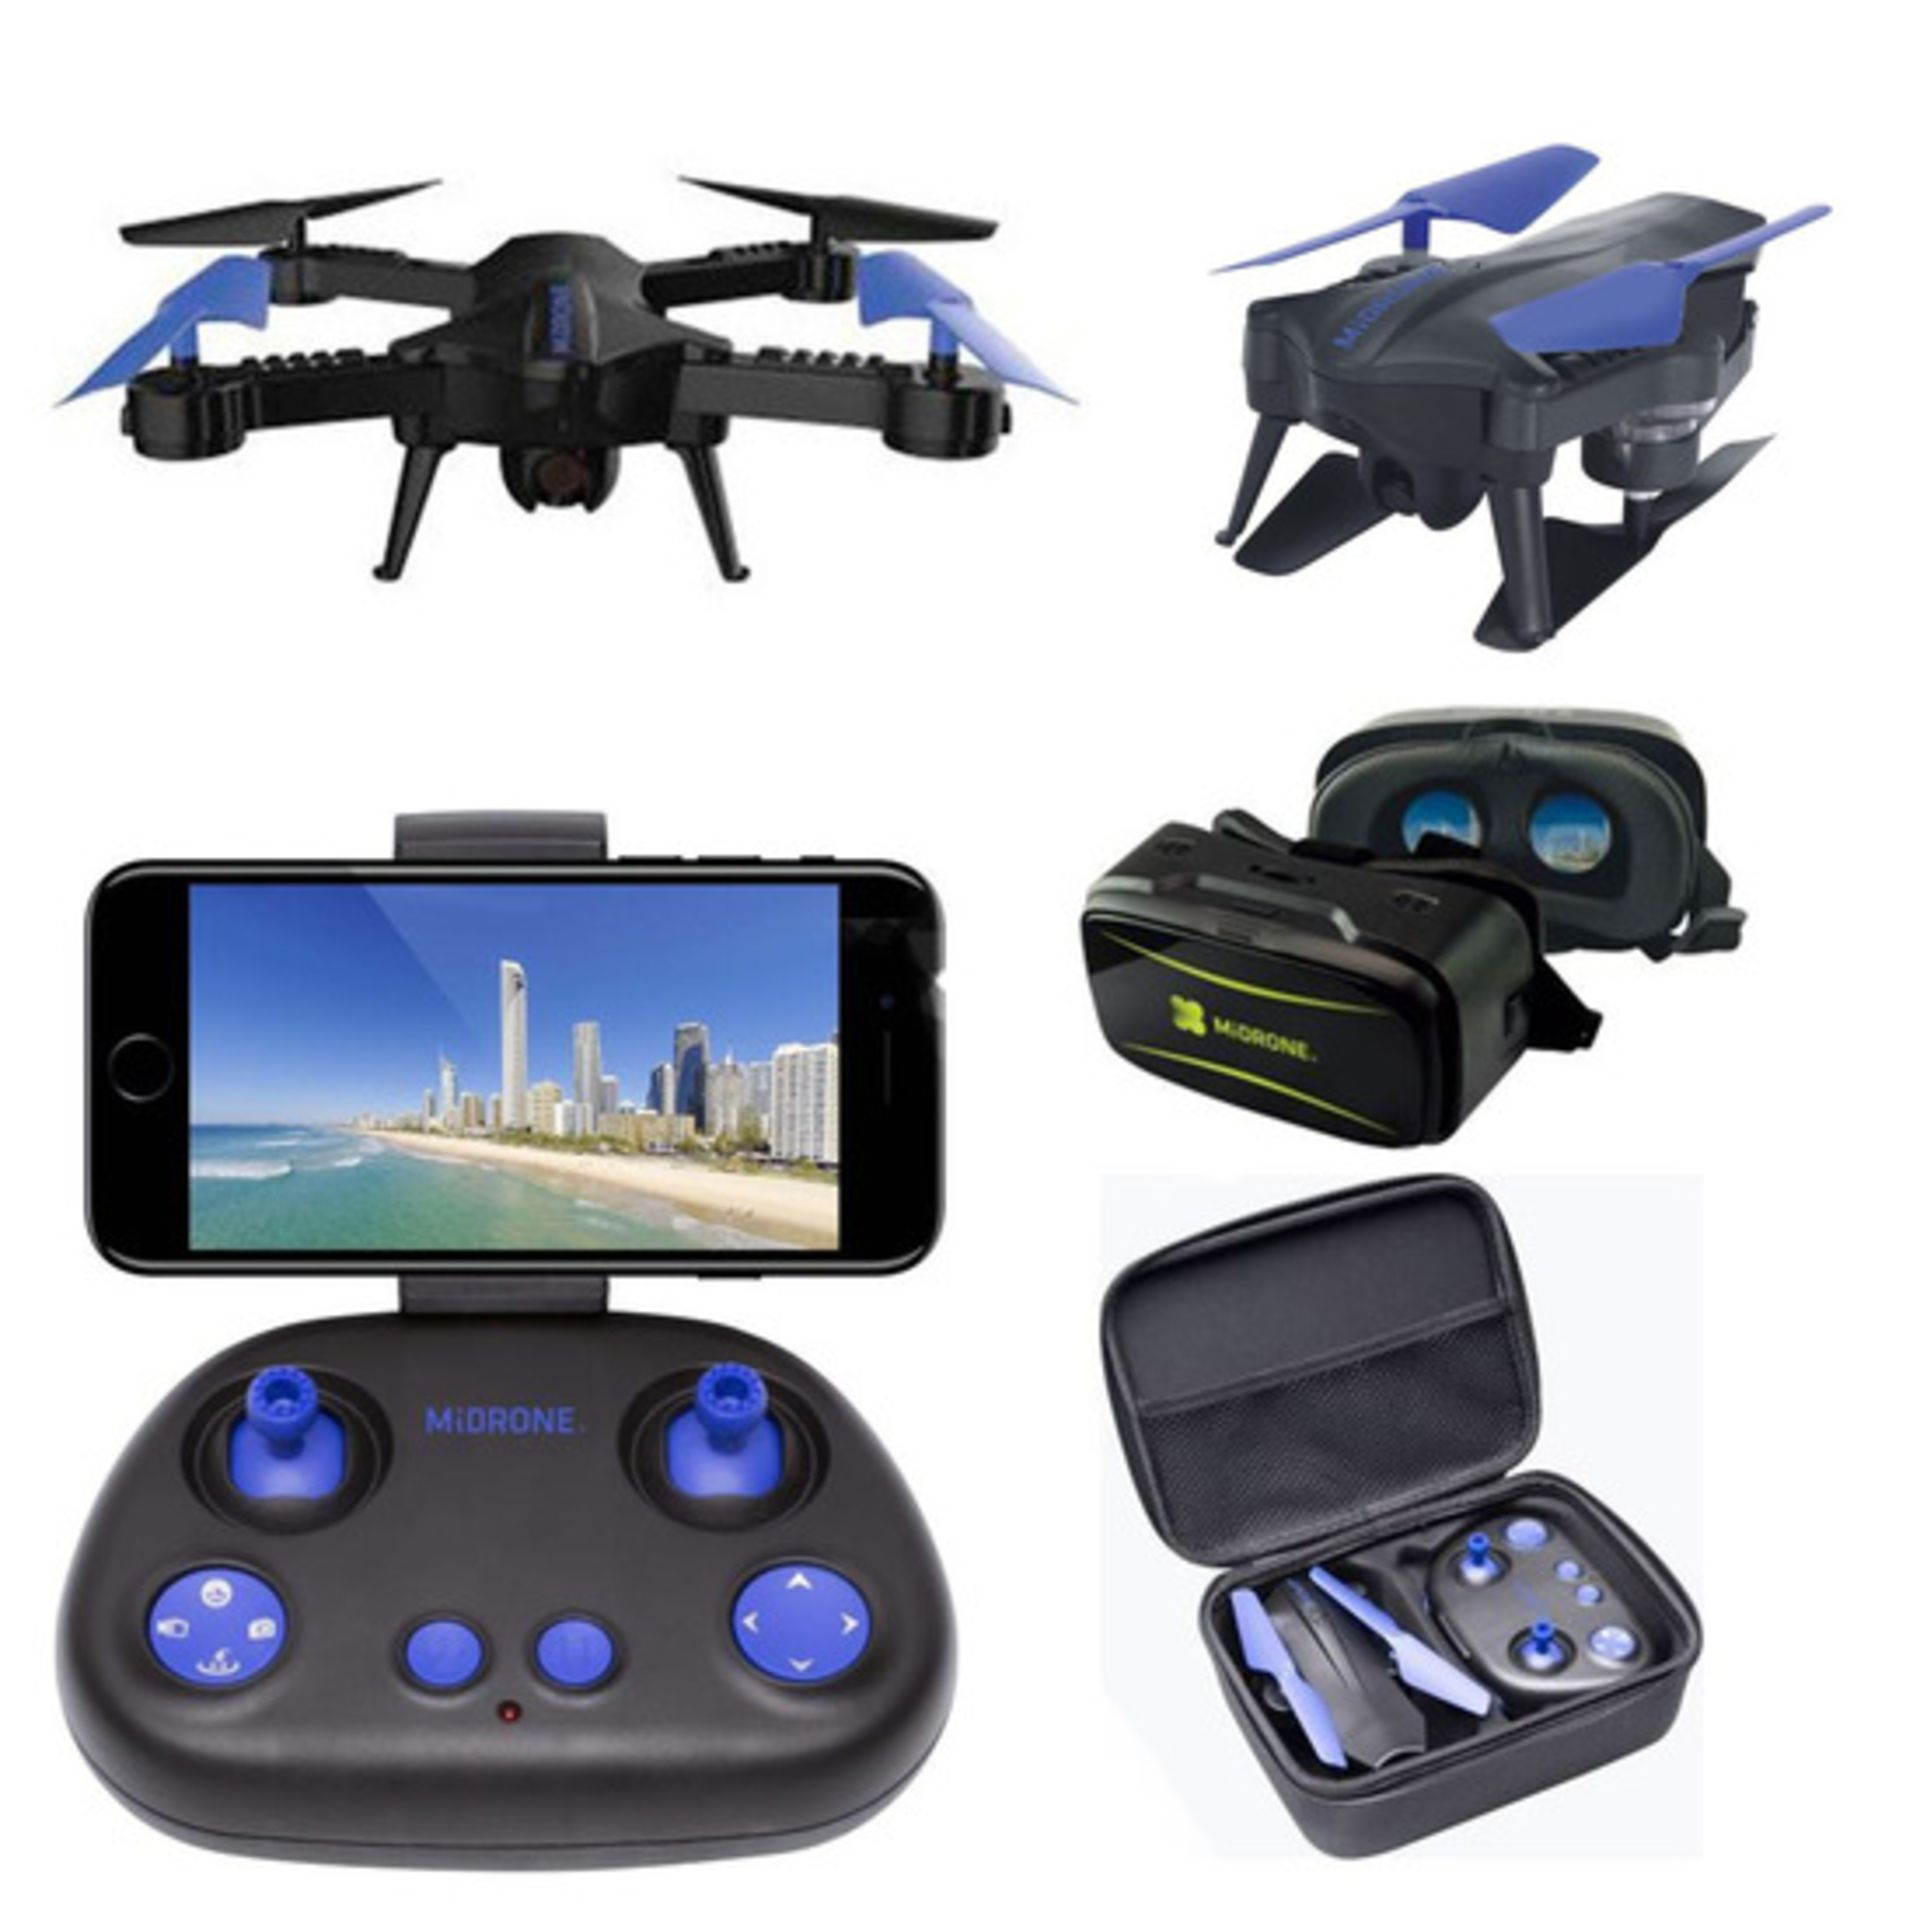 Lot 15789 - V Brand New MiDrone HD WiFi Drone With Intergrated Full HD Camera PLUS VR Kit (Goggles & Case) -